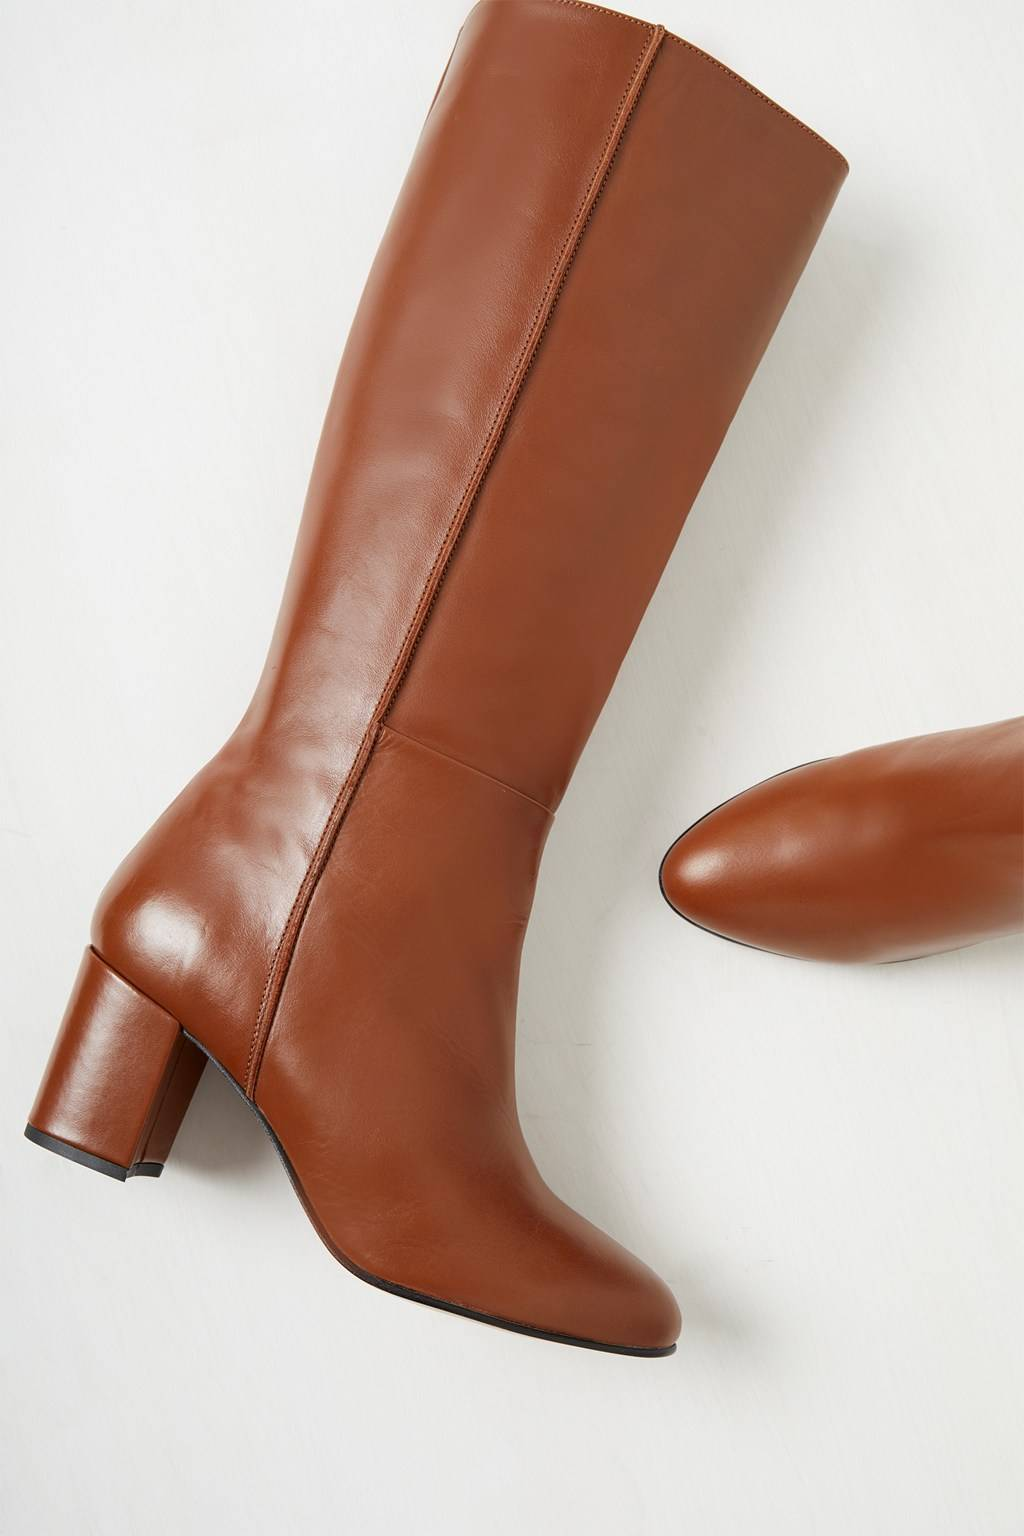 French Connenction Renzo Leather Knee High Boots